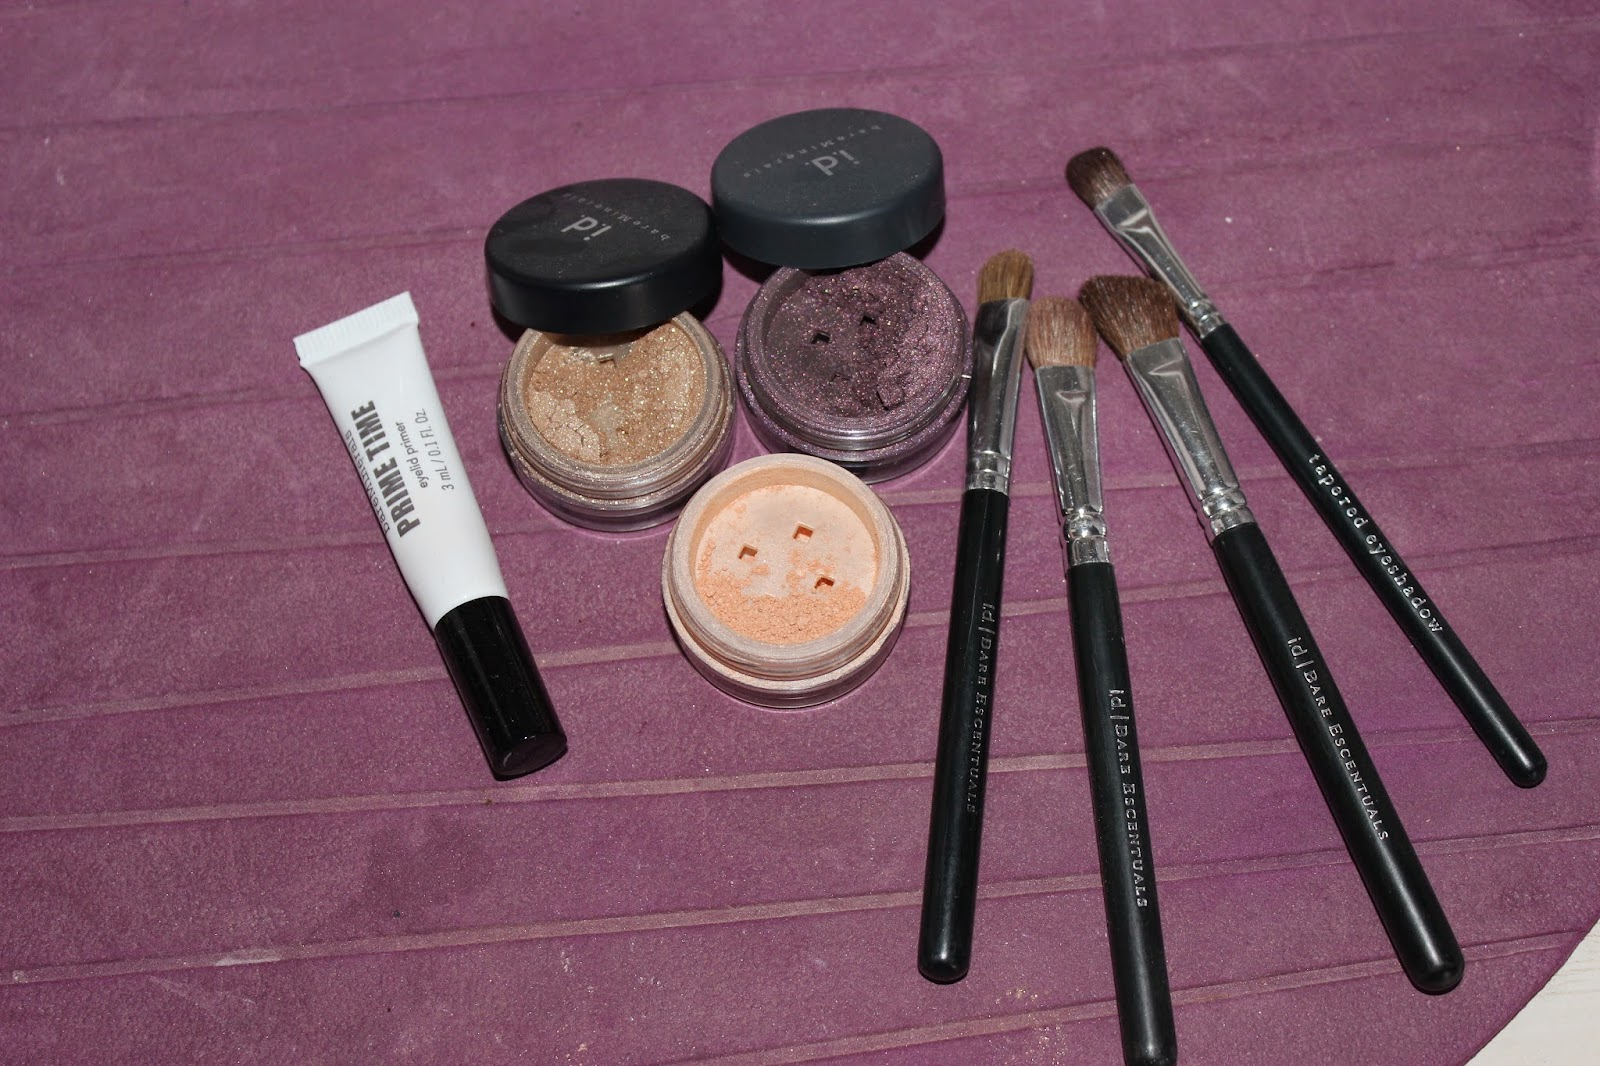 maquillage prune et or